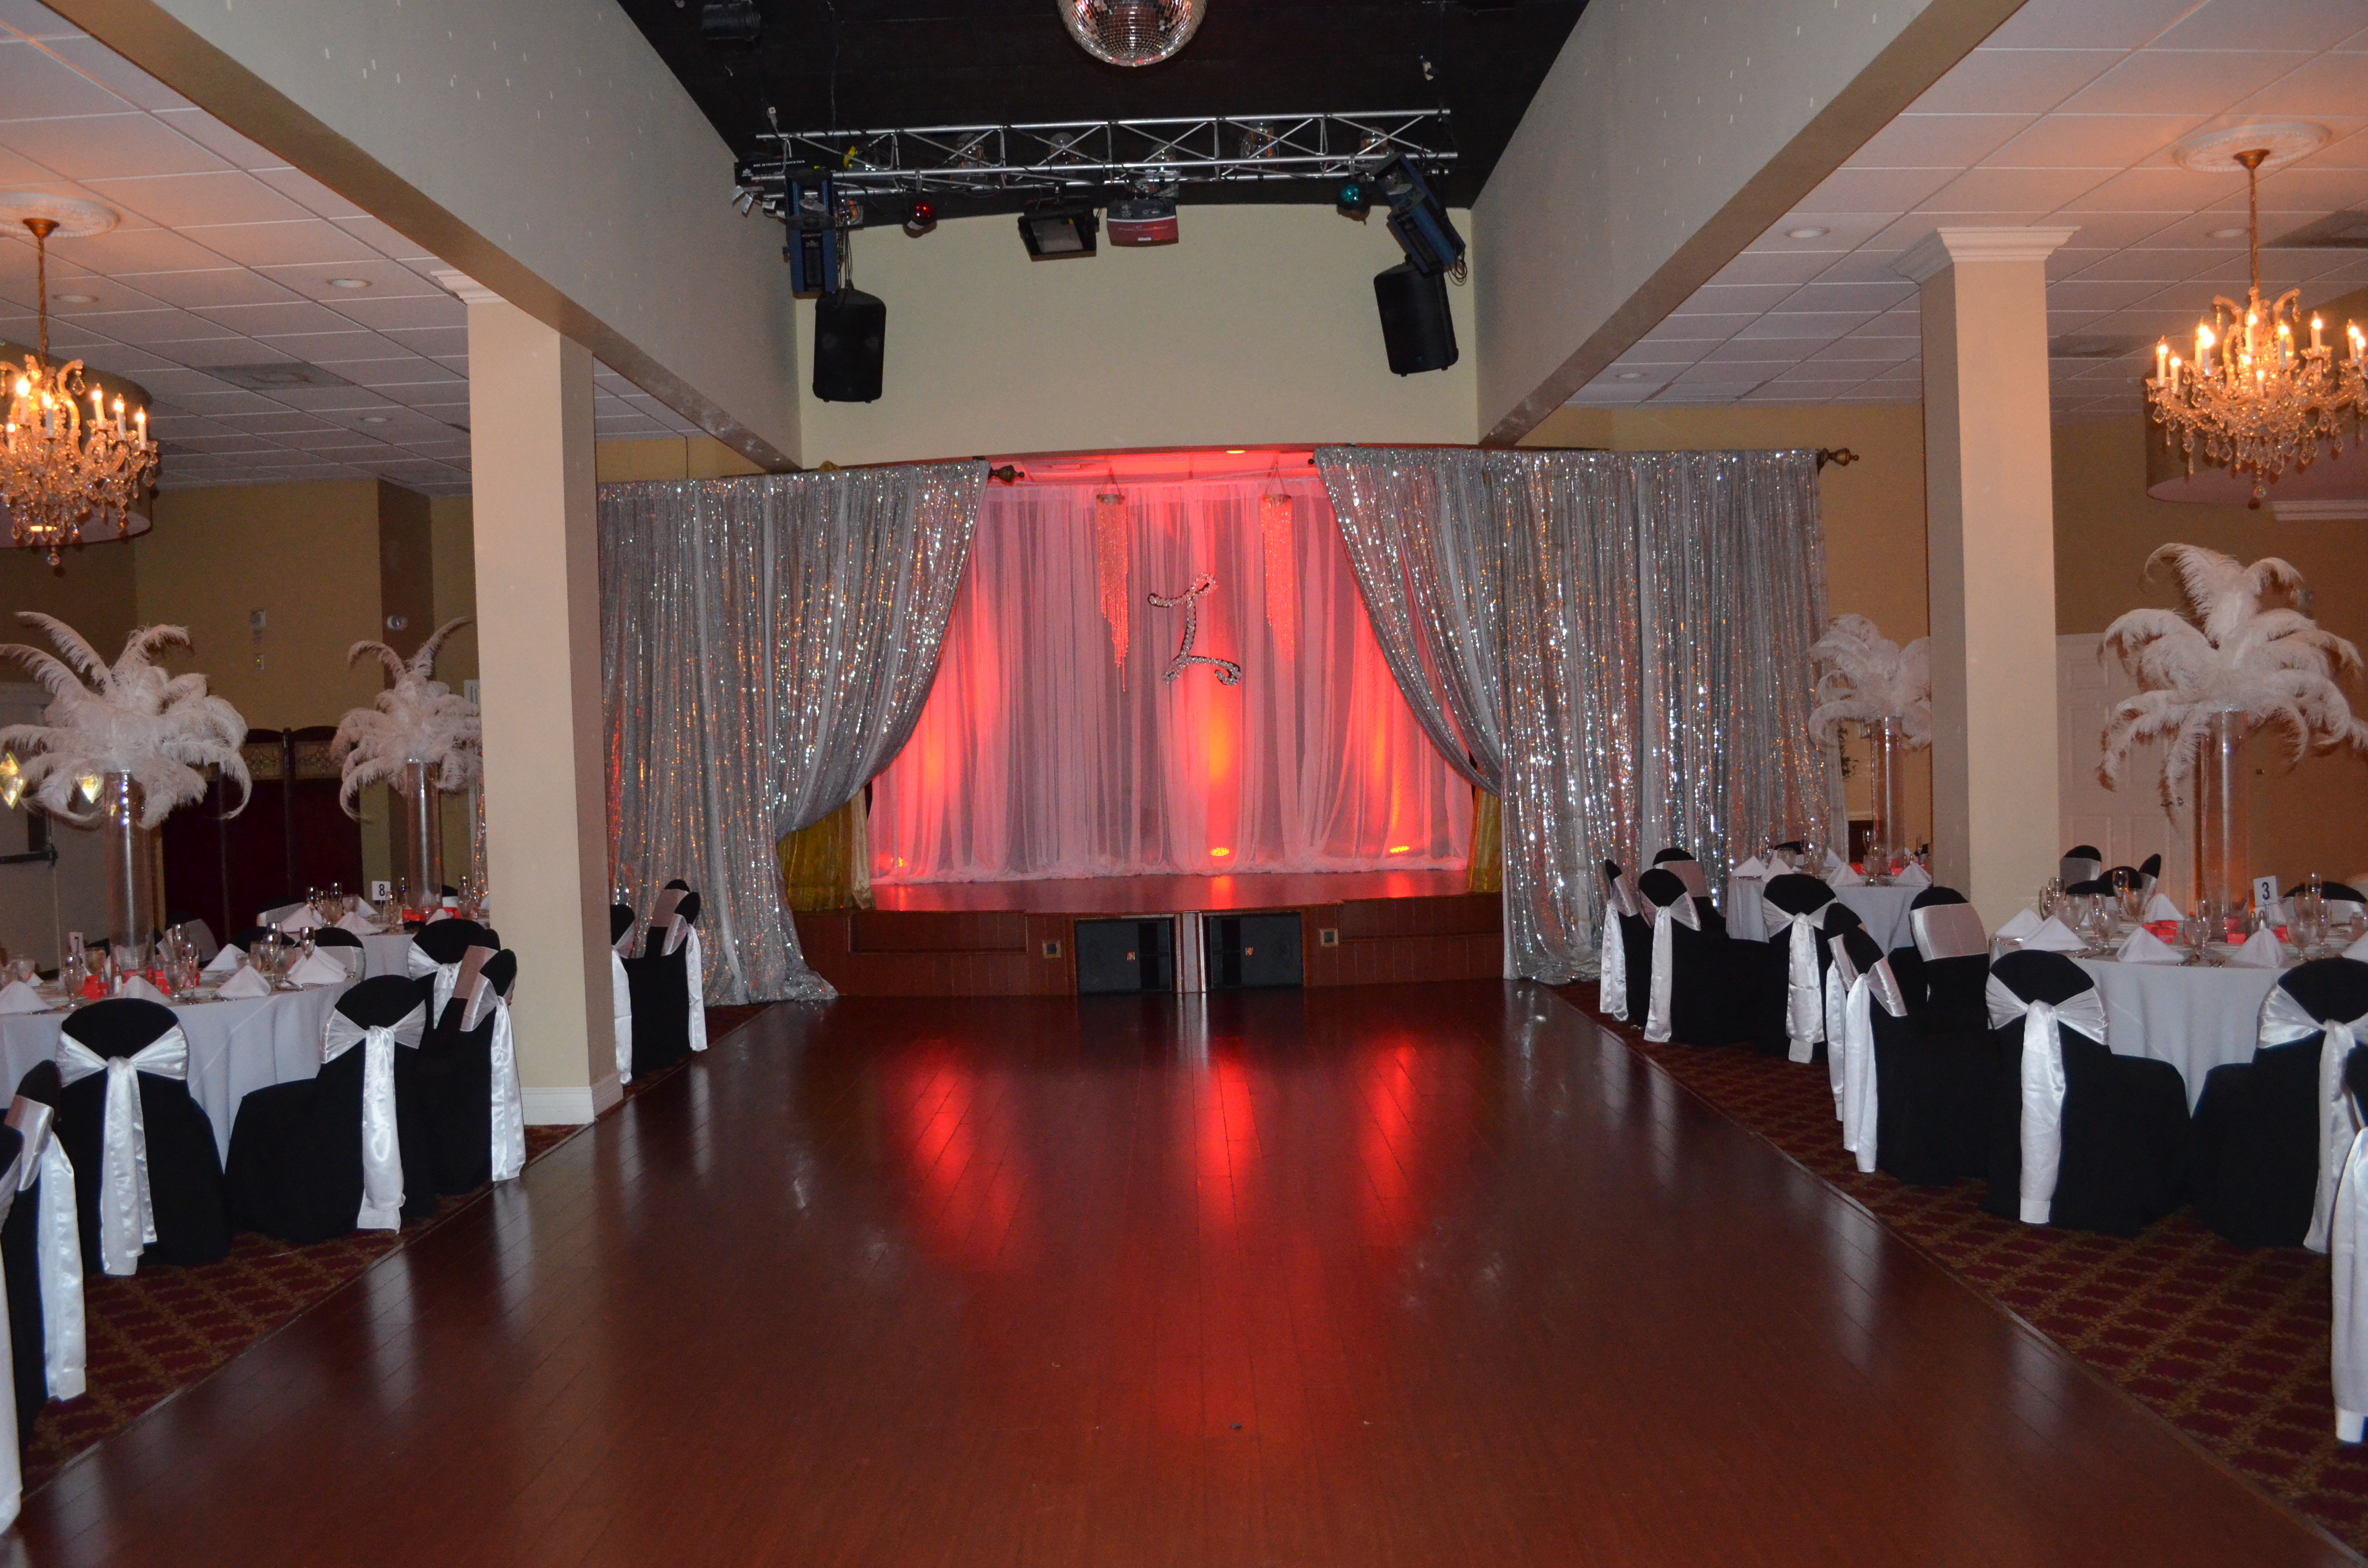 Wedding venues miami laurette 15th birthday party for 15th birthday party decoration ideas